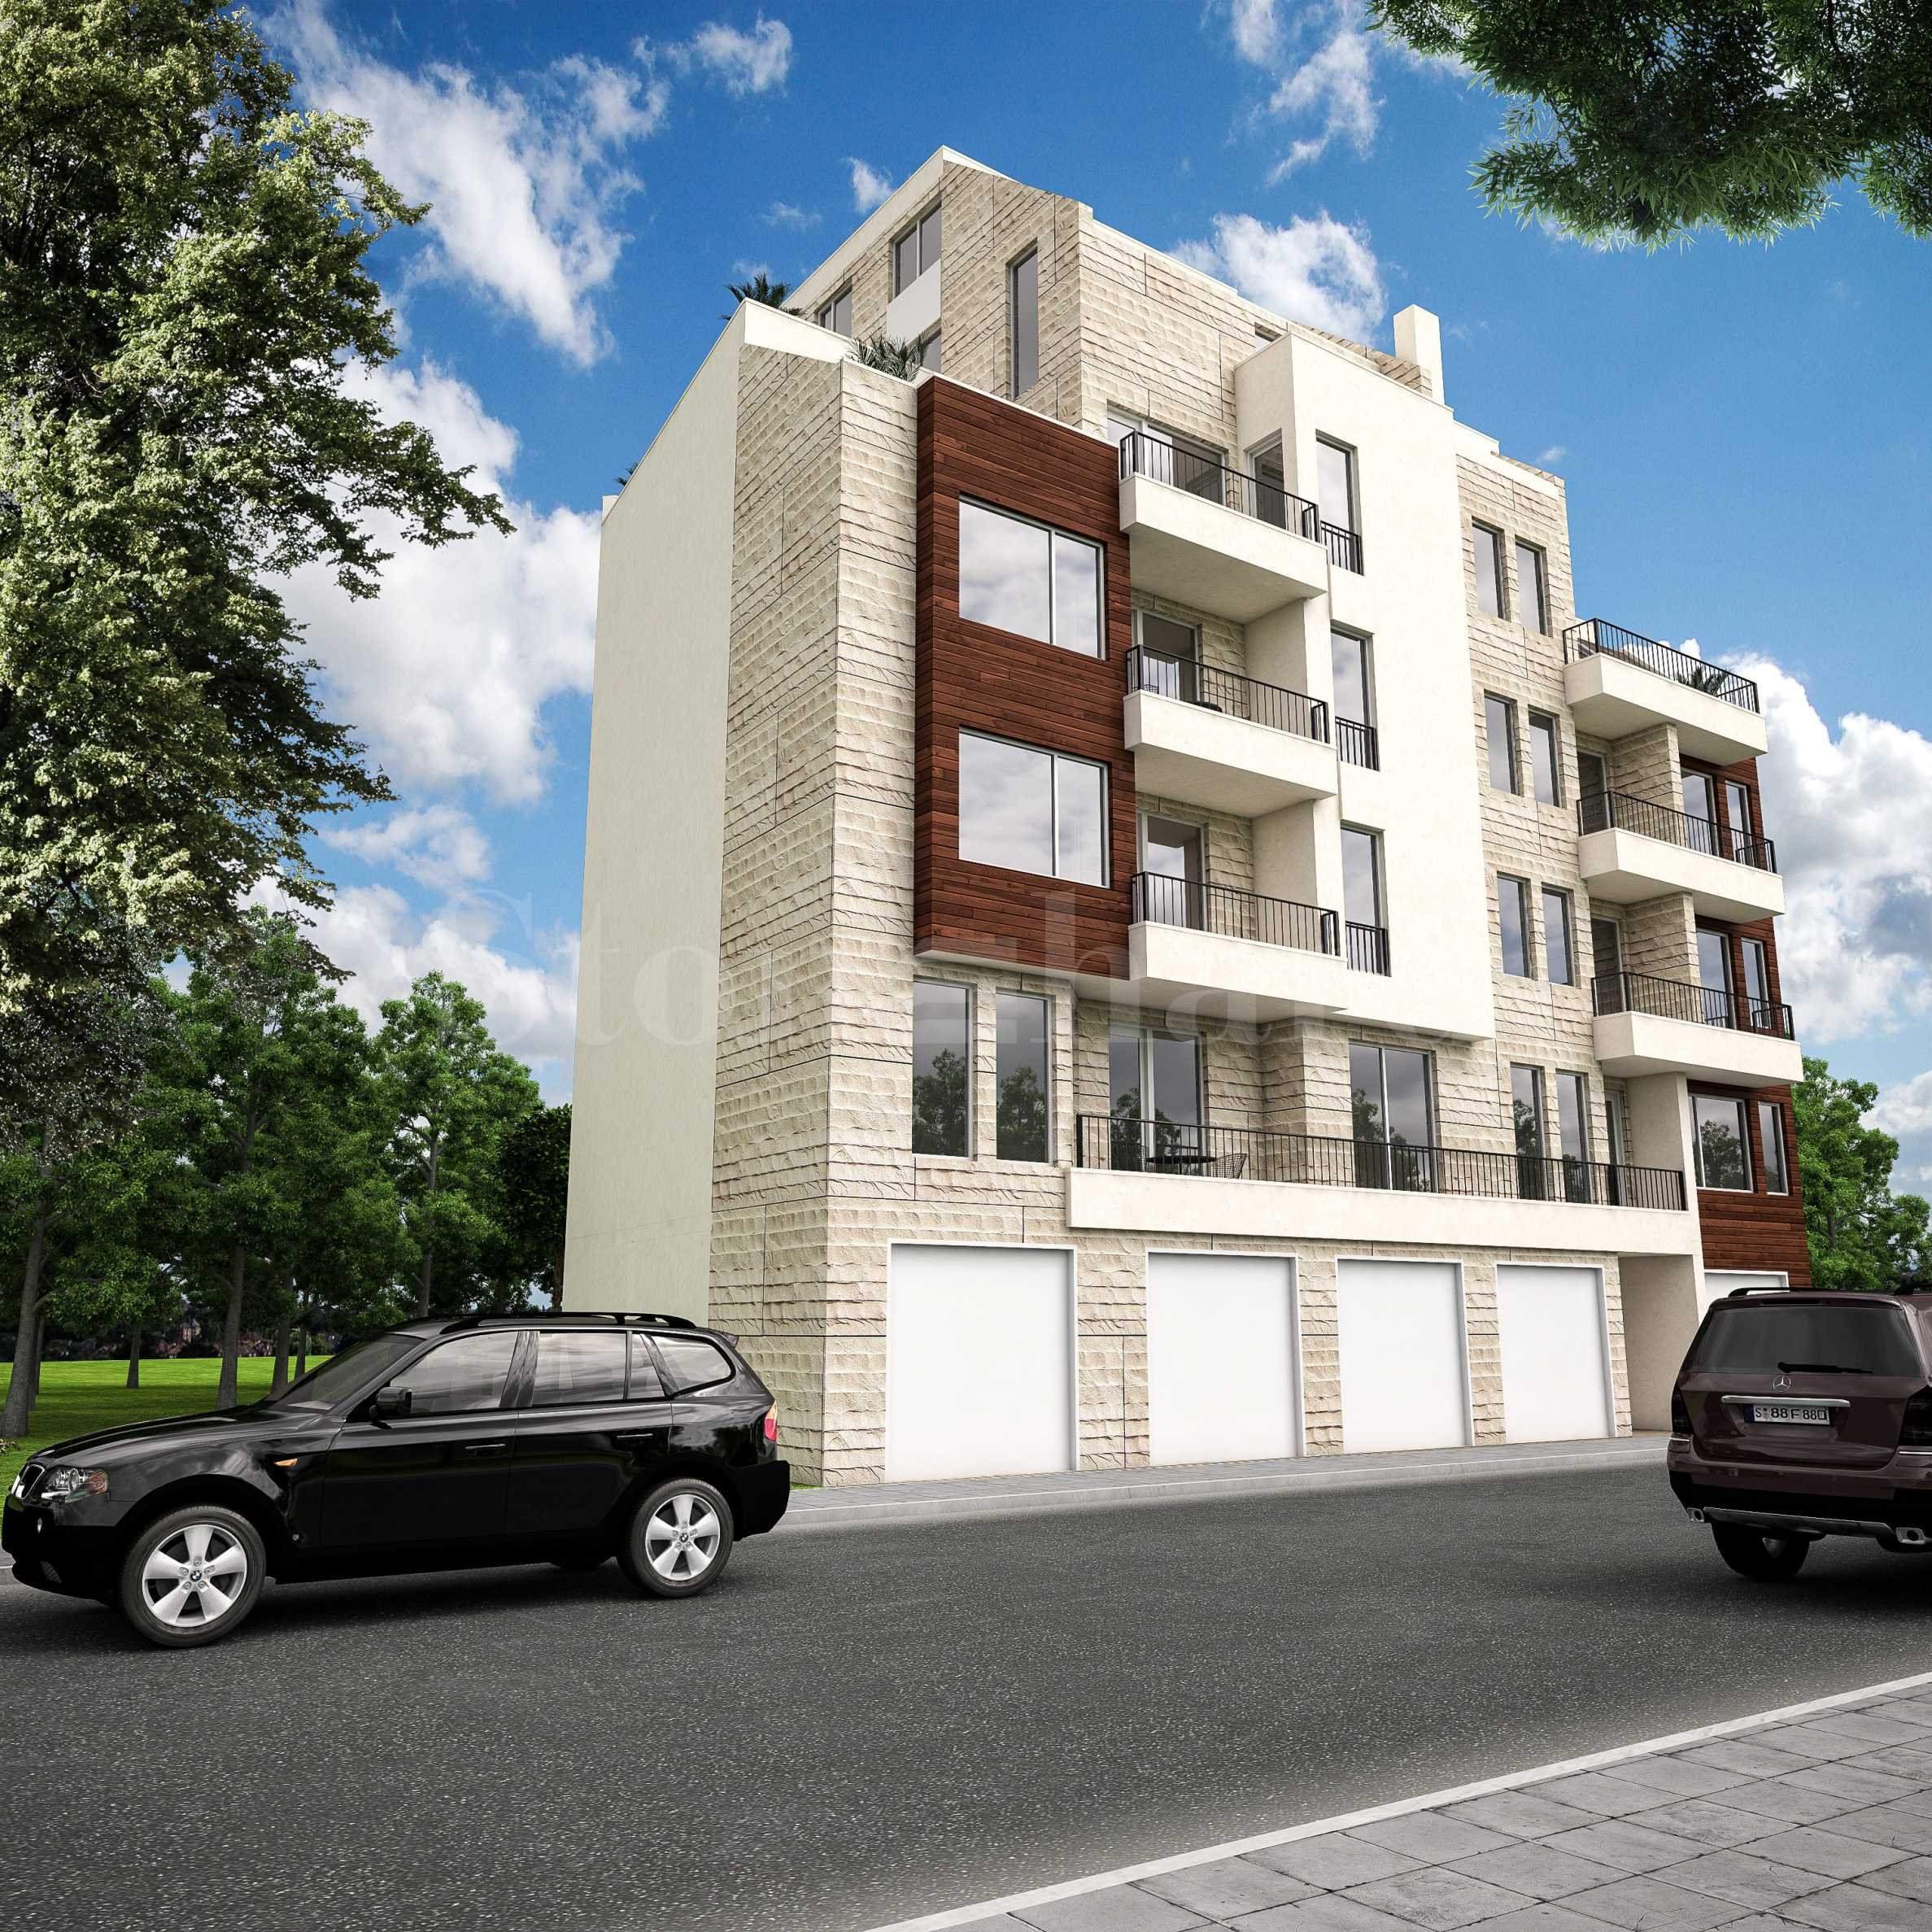 New 5-storey building with functional apartments near the center of Burgas1 - Stonehard